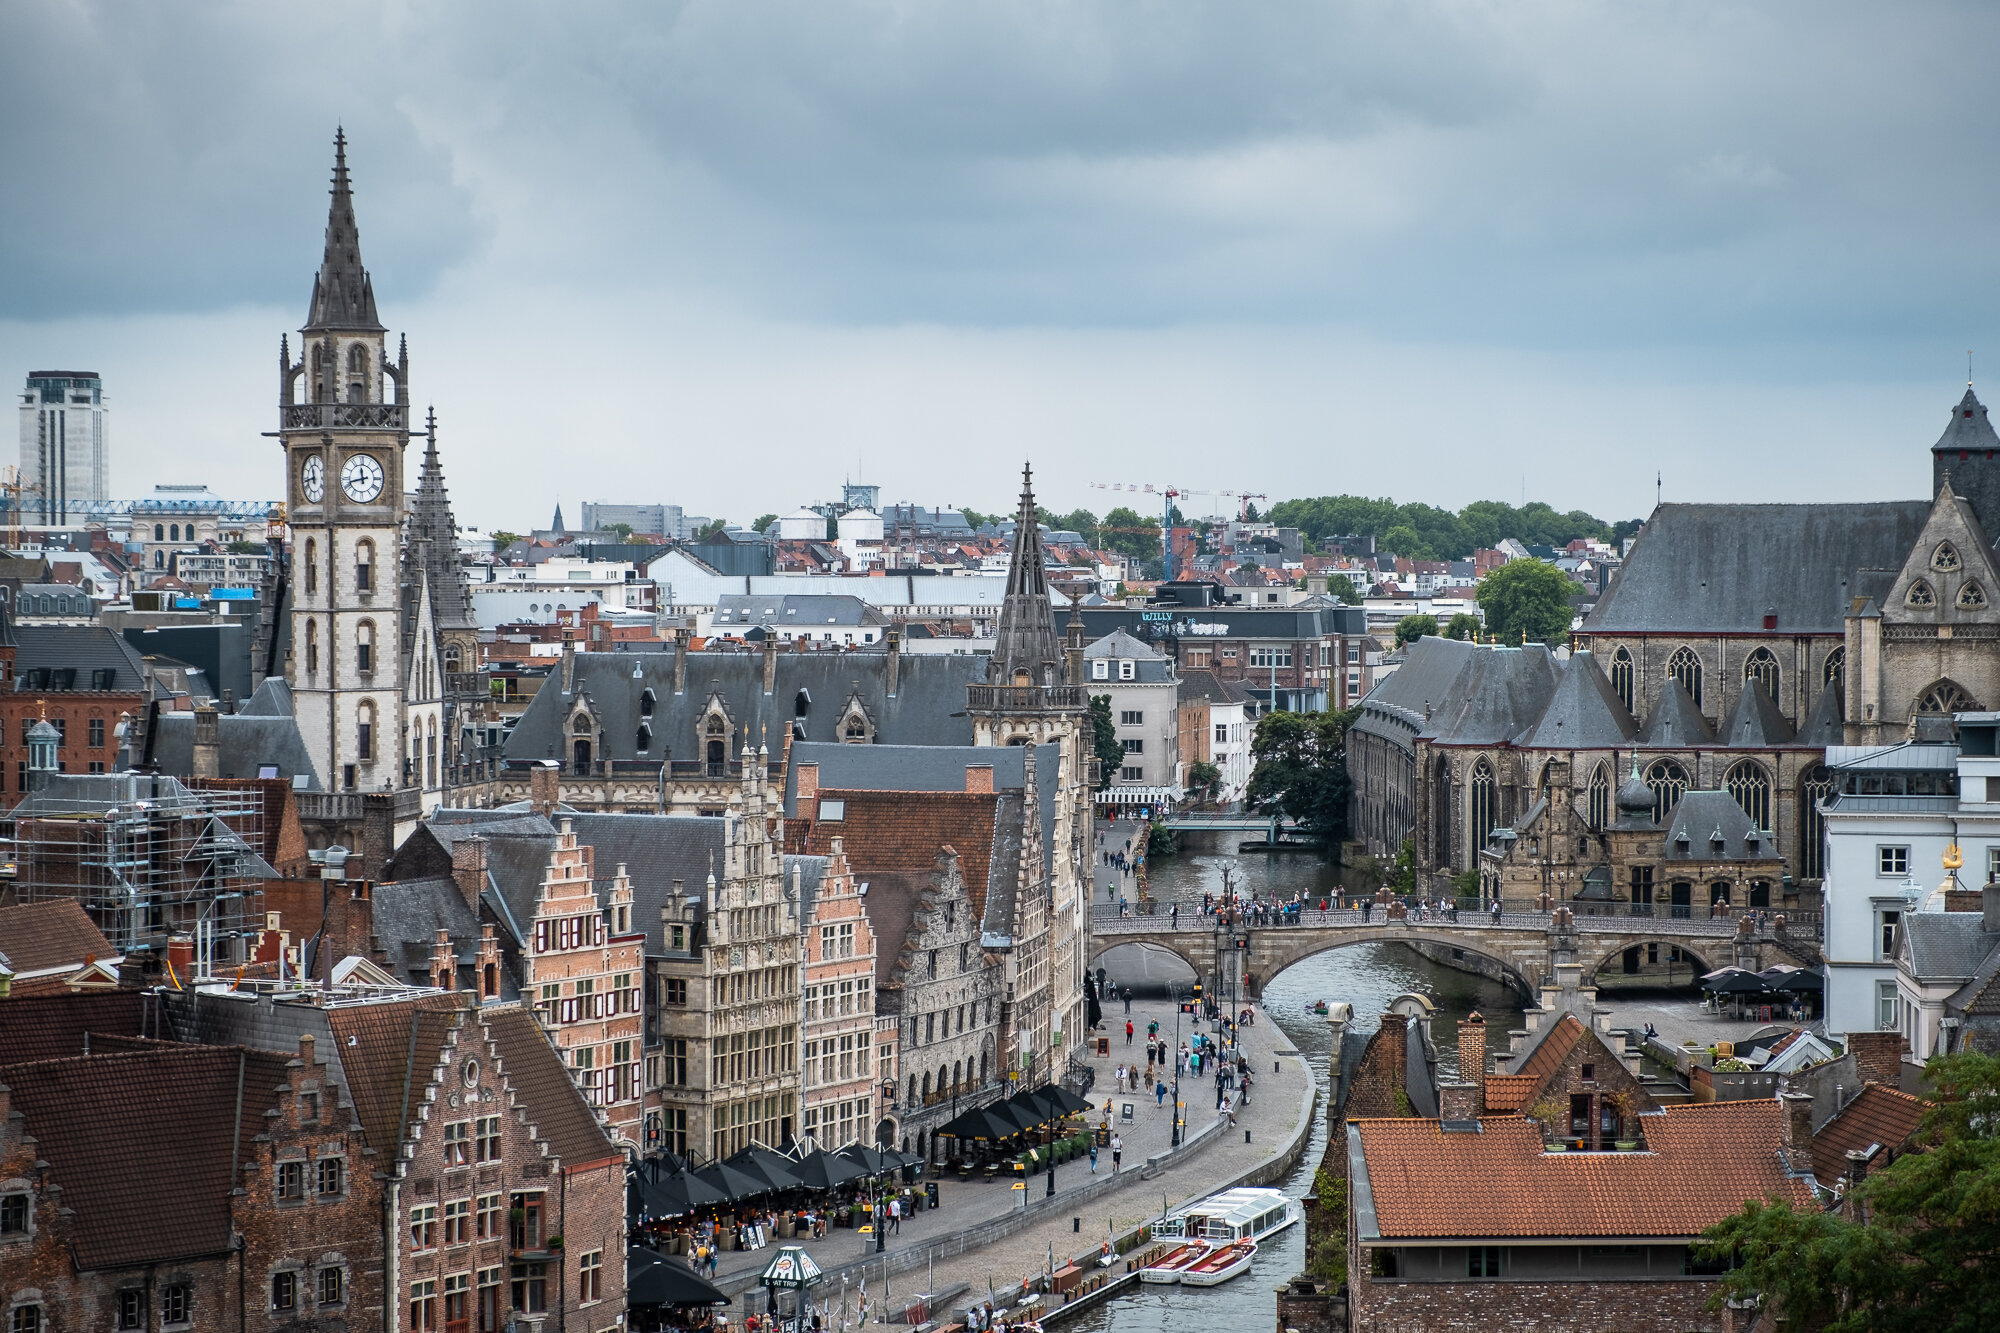 A rooftop view of Ghent | Fujifilm XT-30 | XF18-55mm | 55mm | 1/420 Second | f/4 | ISO160